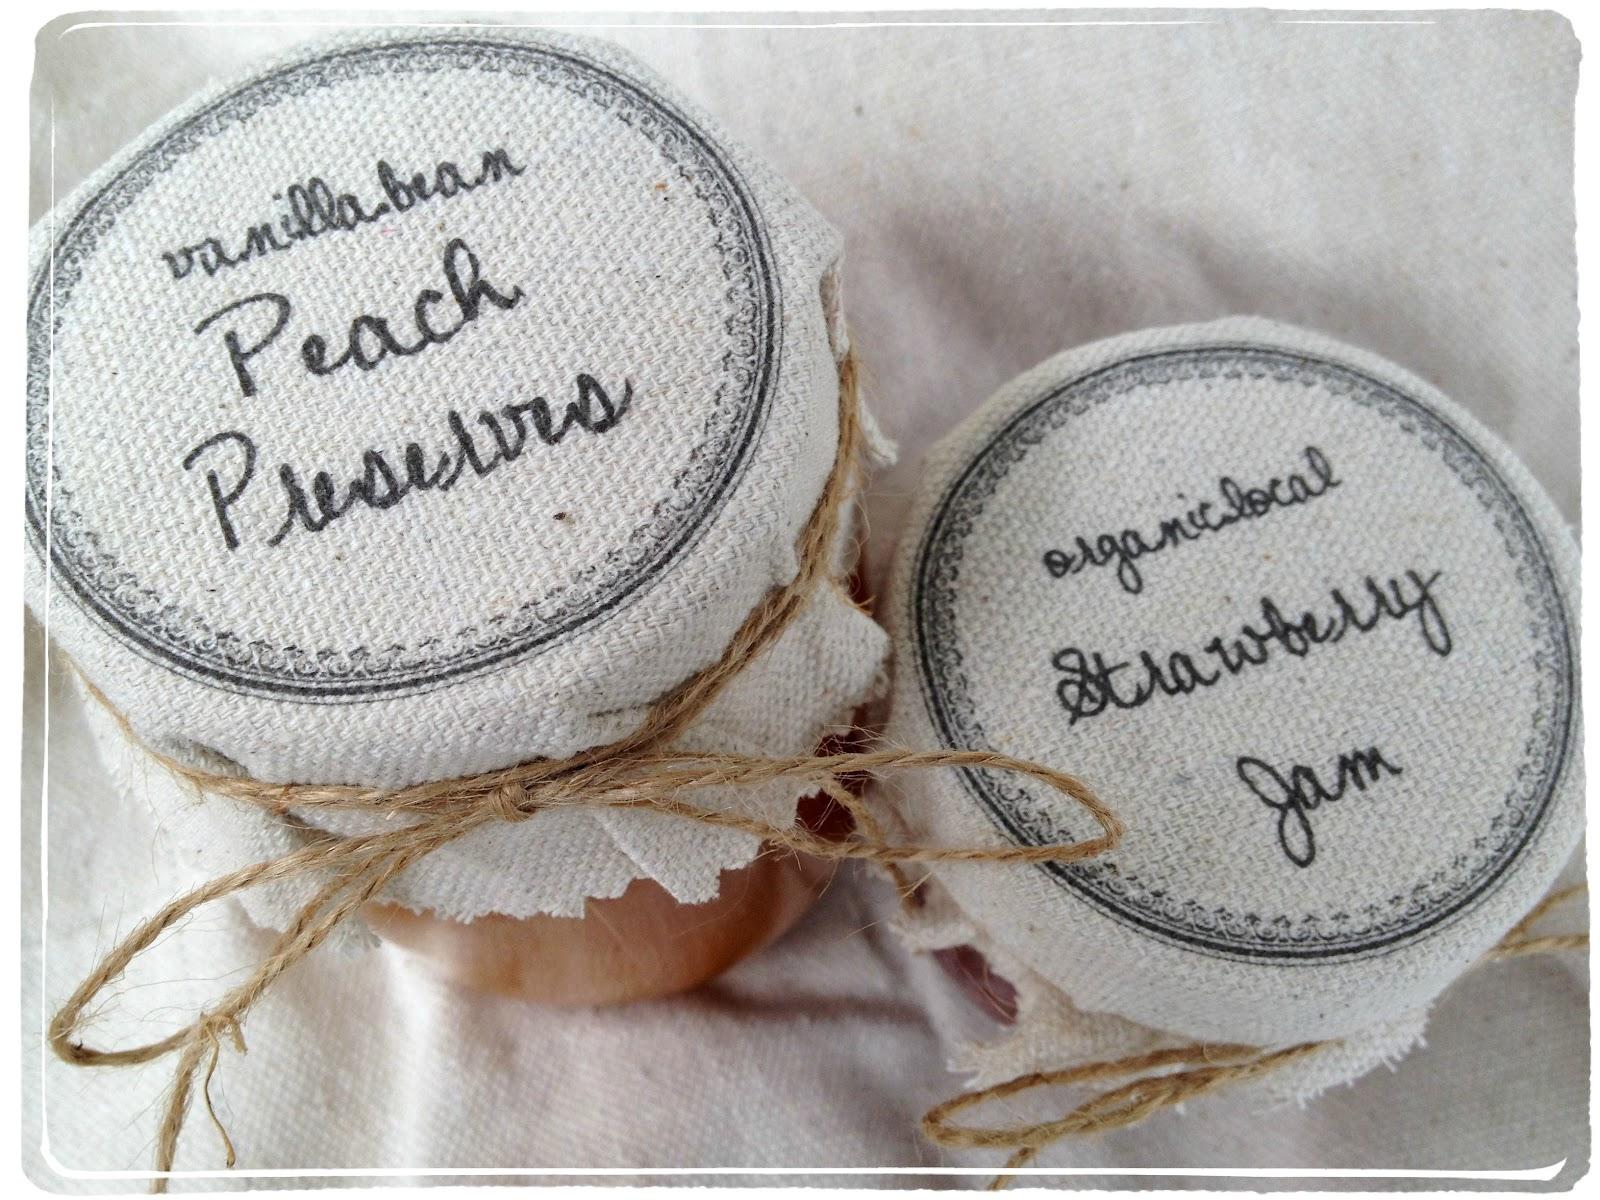 Jennuine by Rook No. 17*: Personalized Fabric Mason Jar Label Tutorial